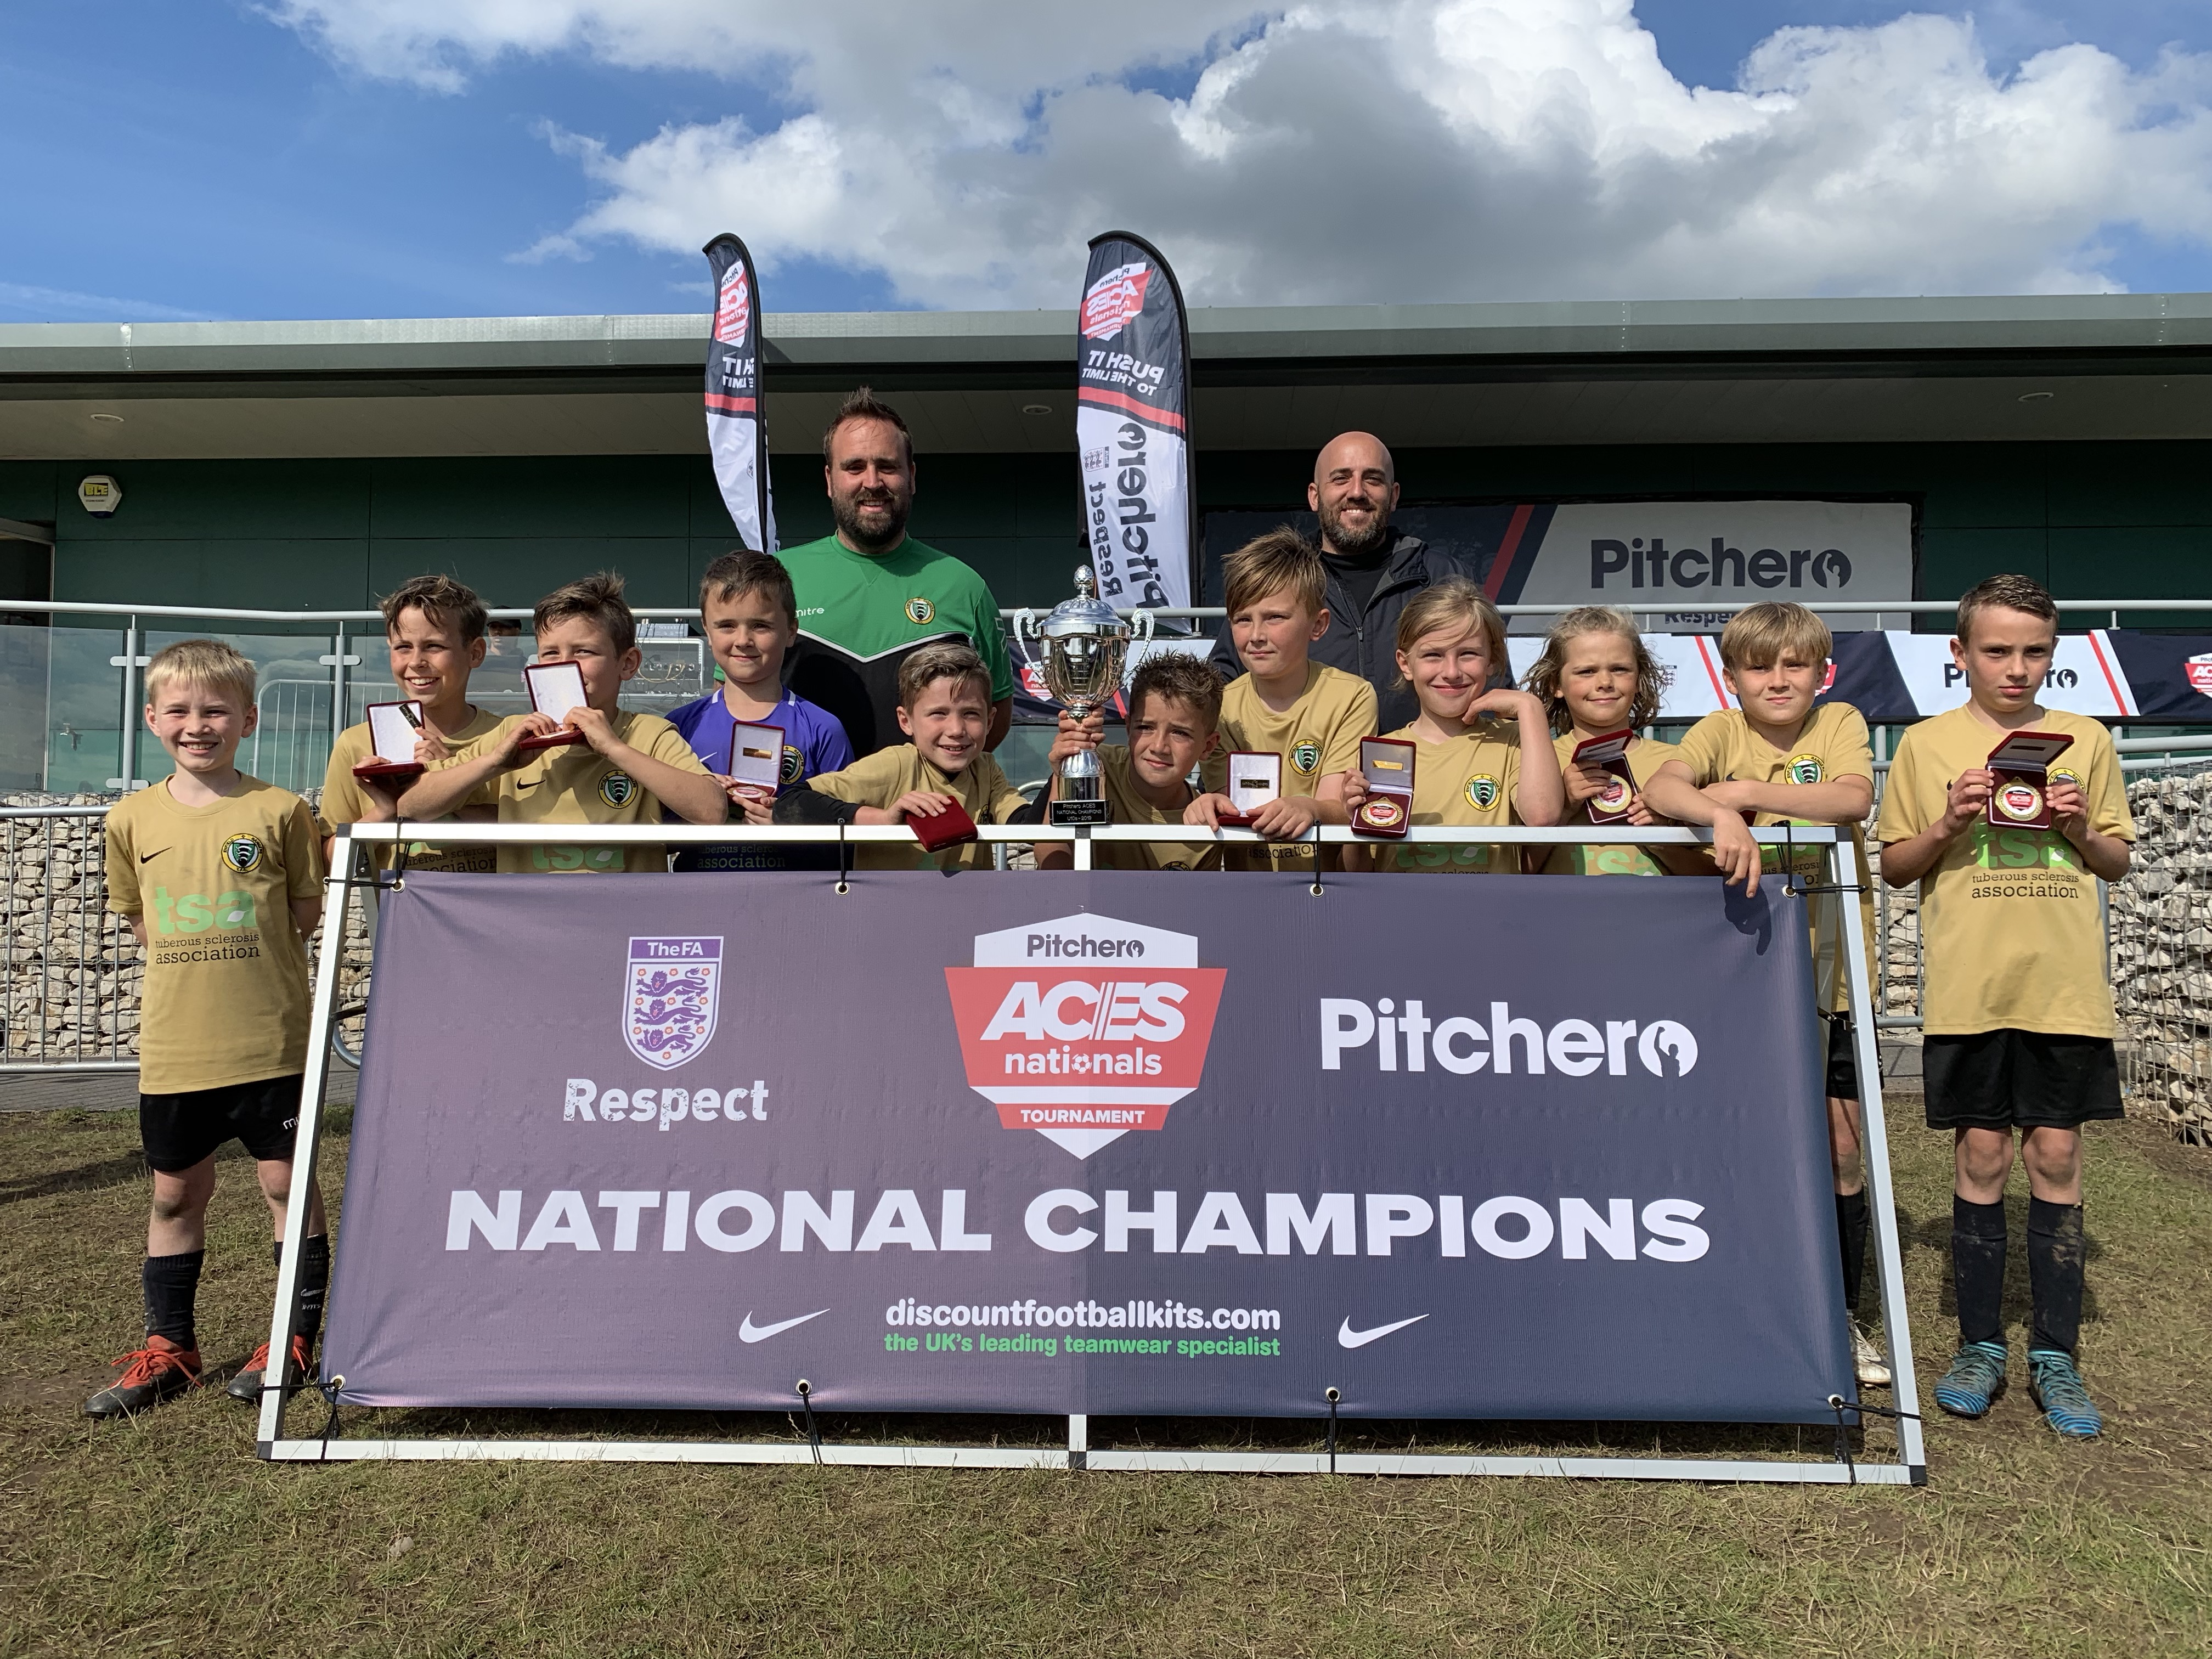 2019's U10 champions, Enfield Rangers, representing Enfield